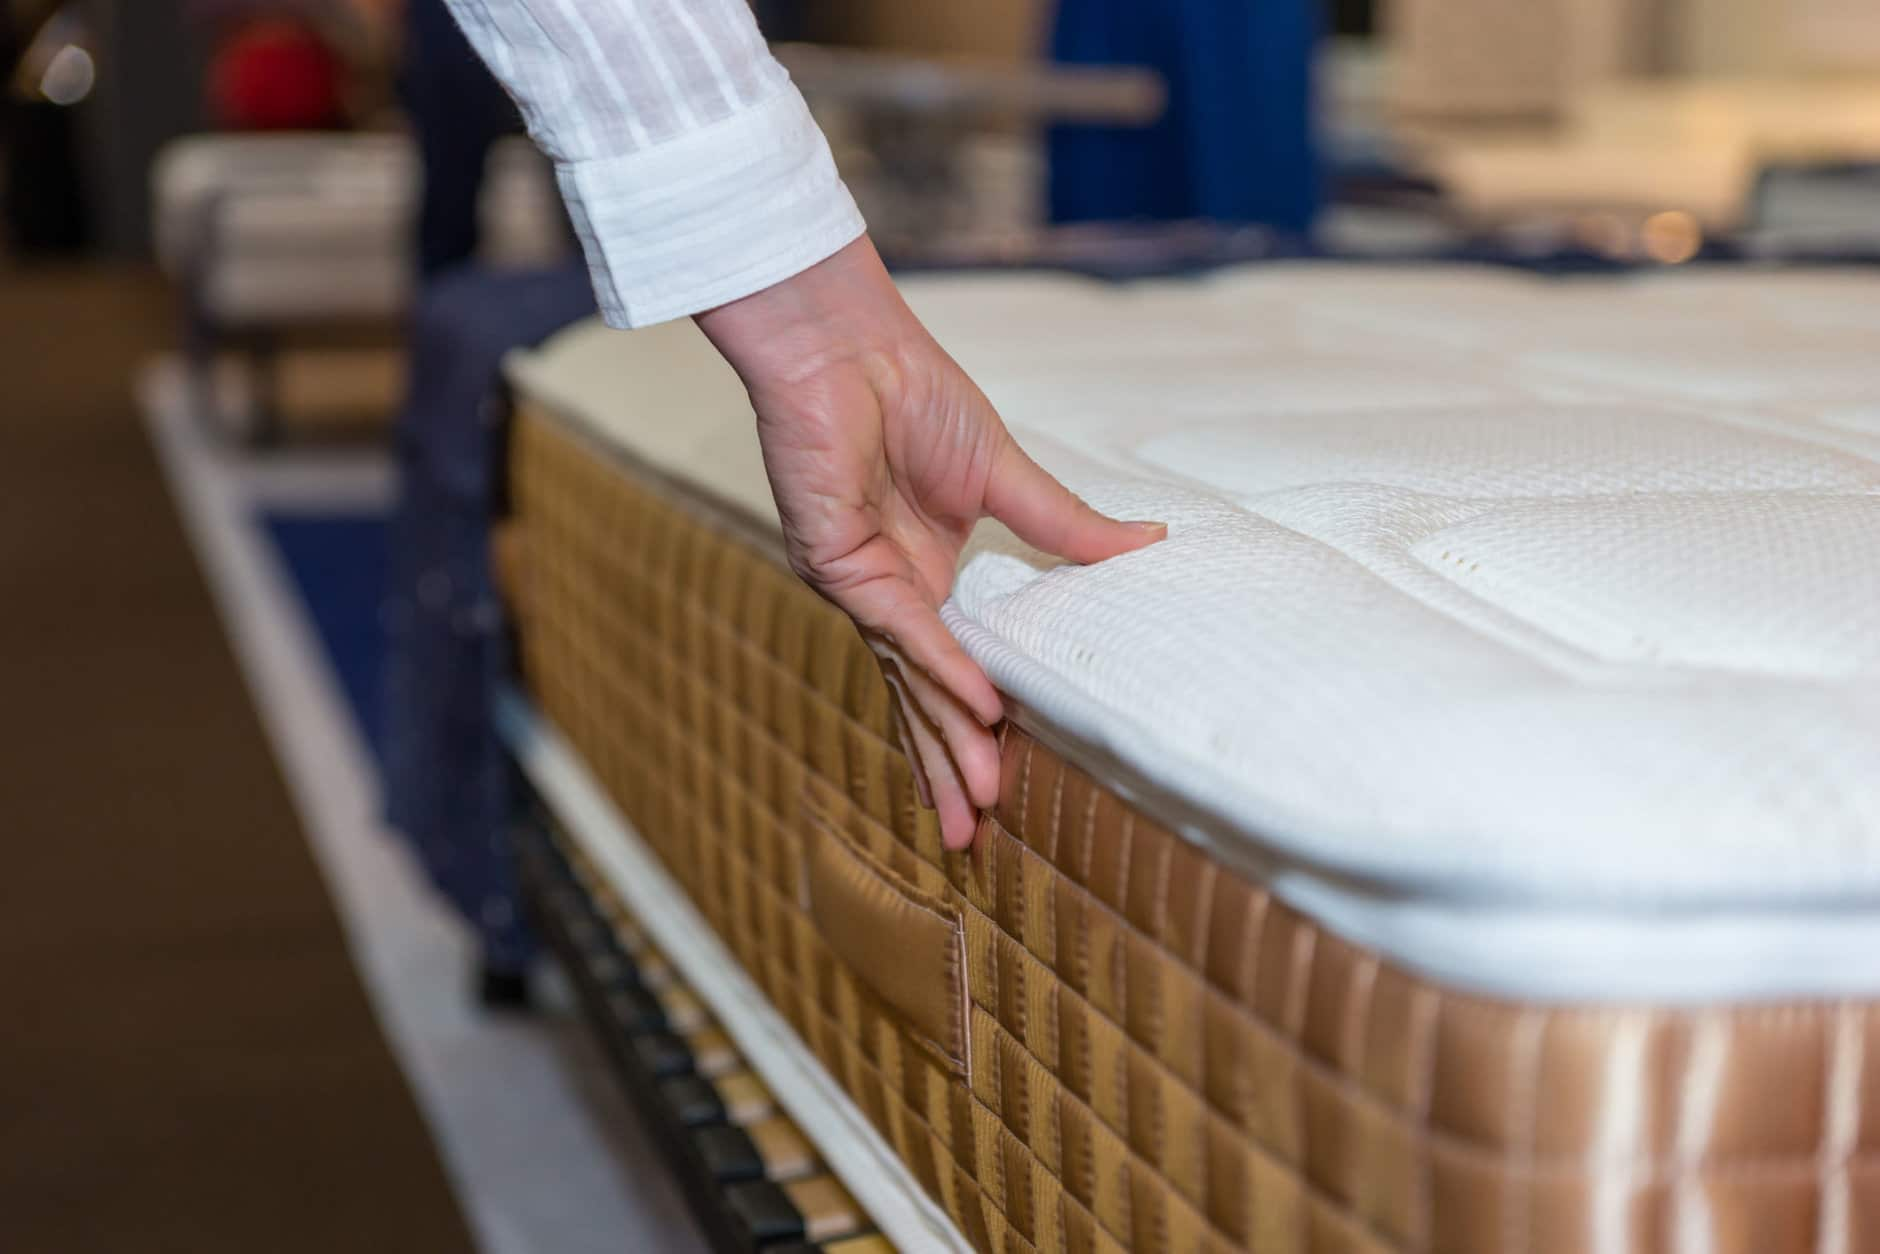 Close-up of female hand touching and testing mattress in a store. Copy space.